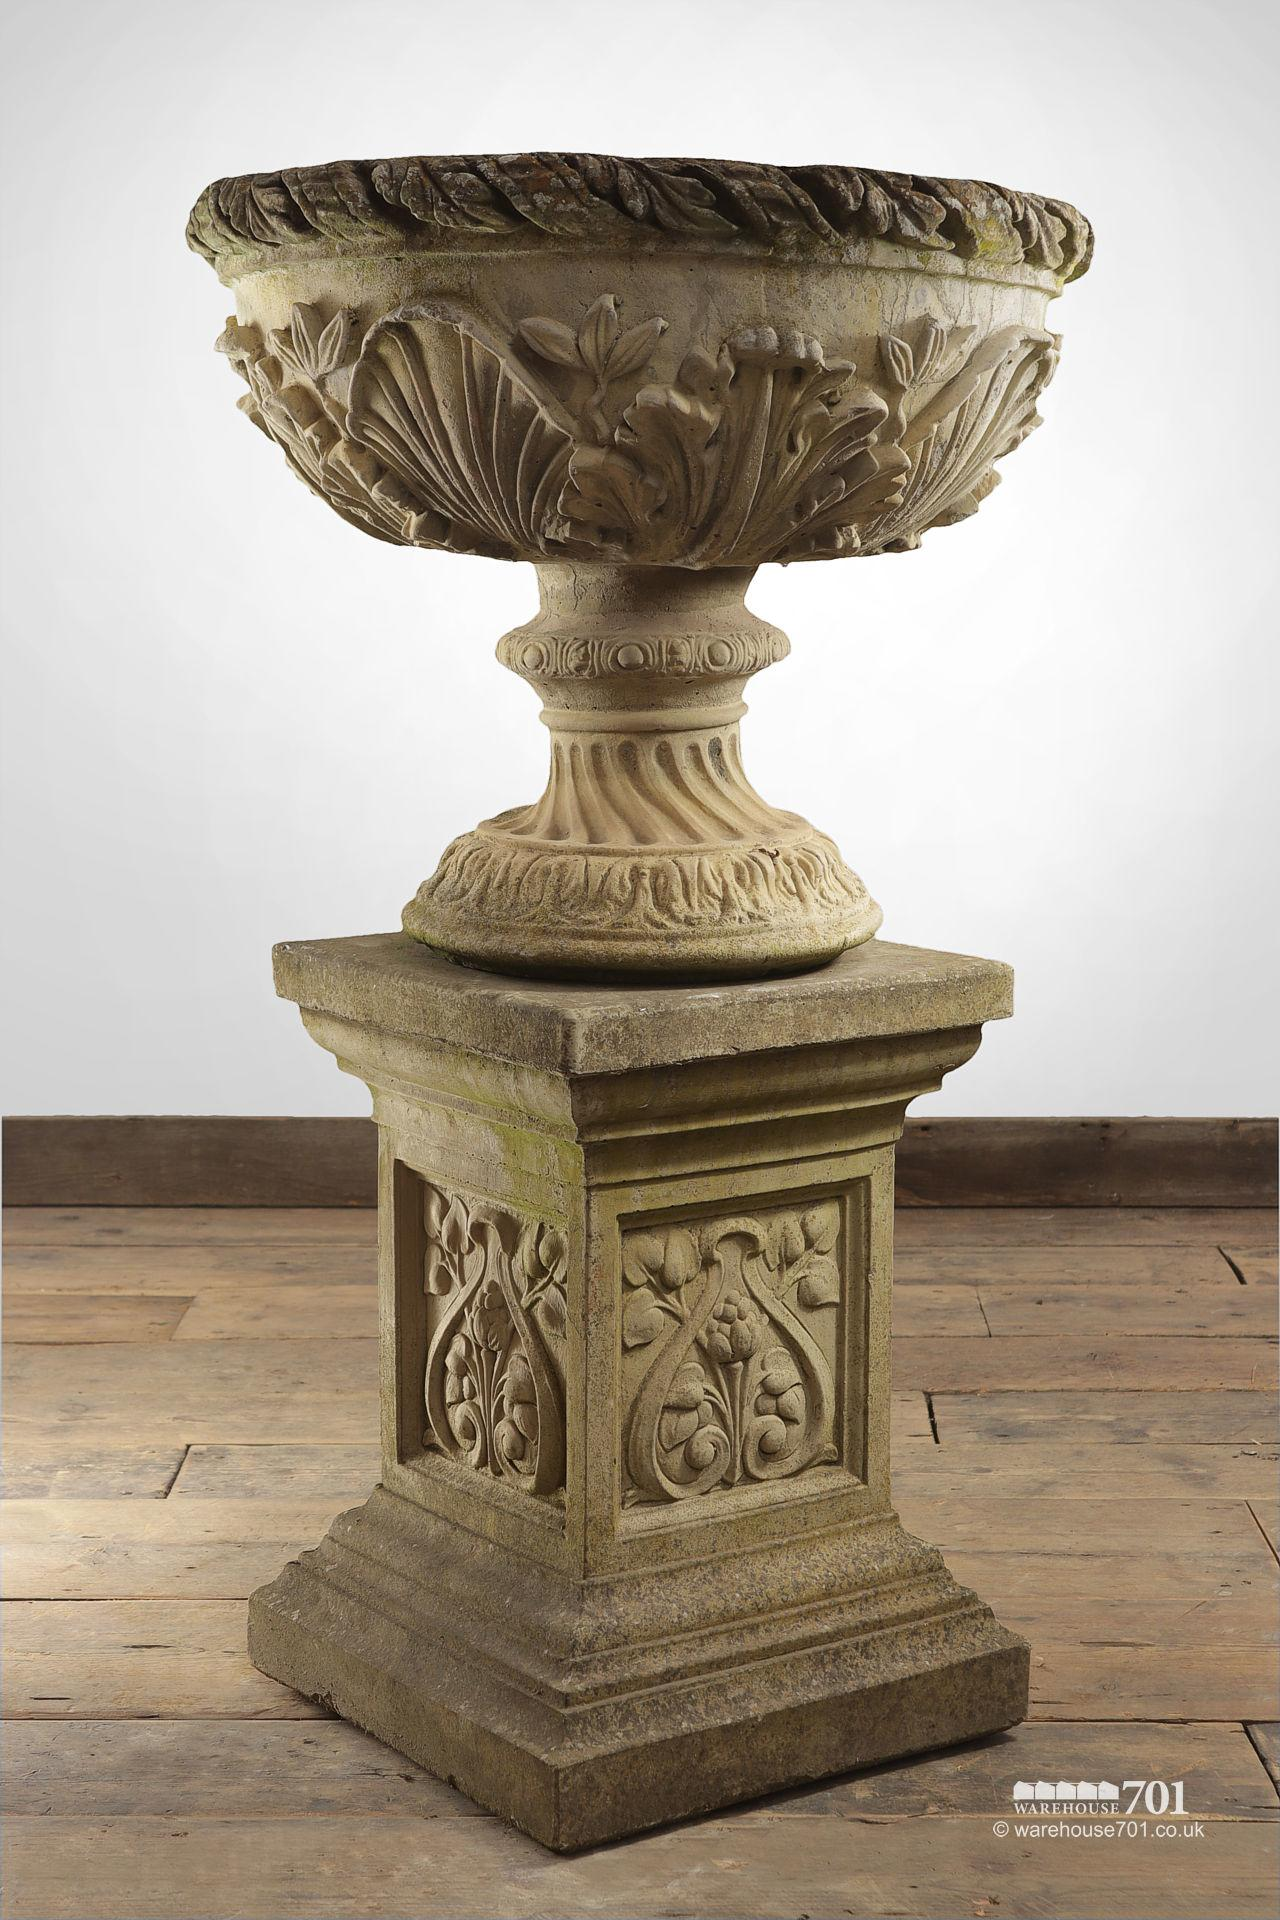 Pair of composite Floral Stone Urns on Plinths